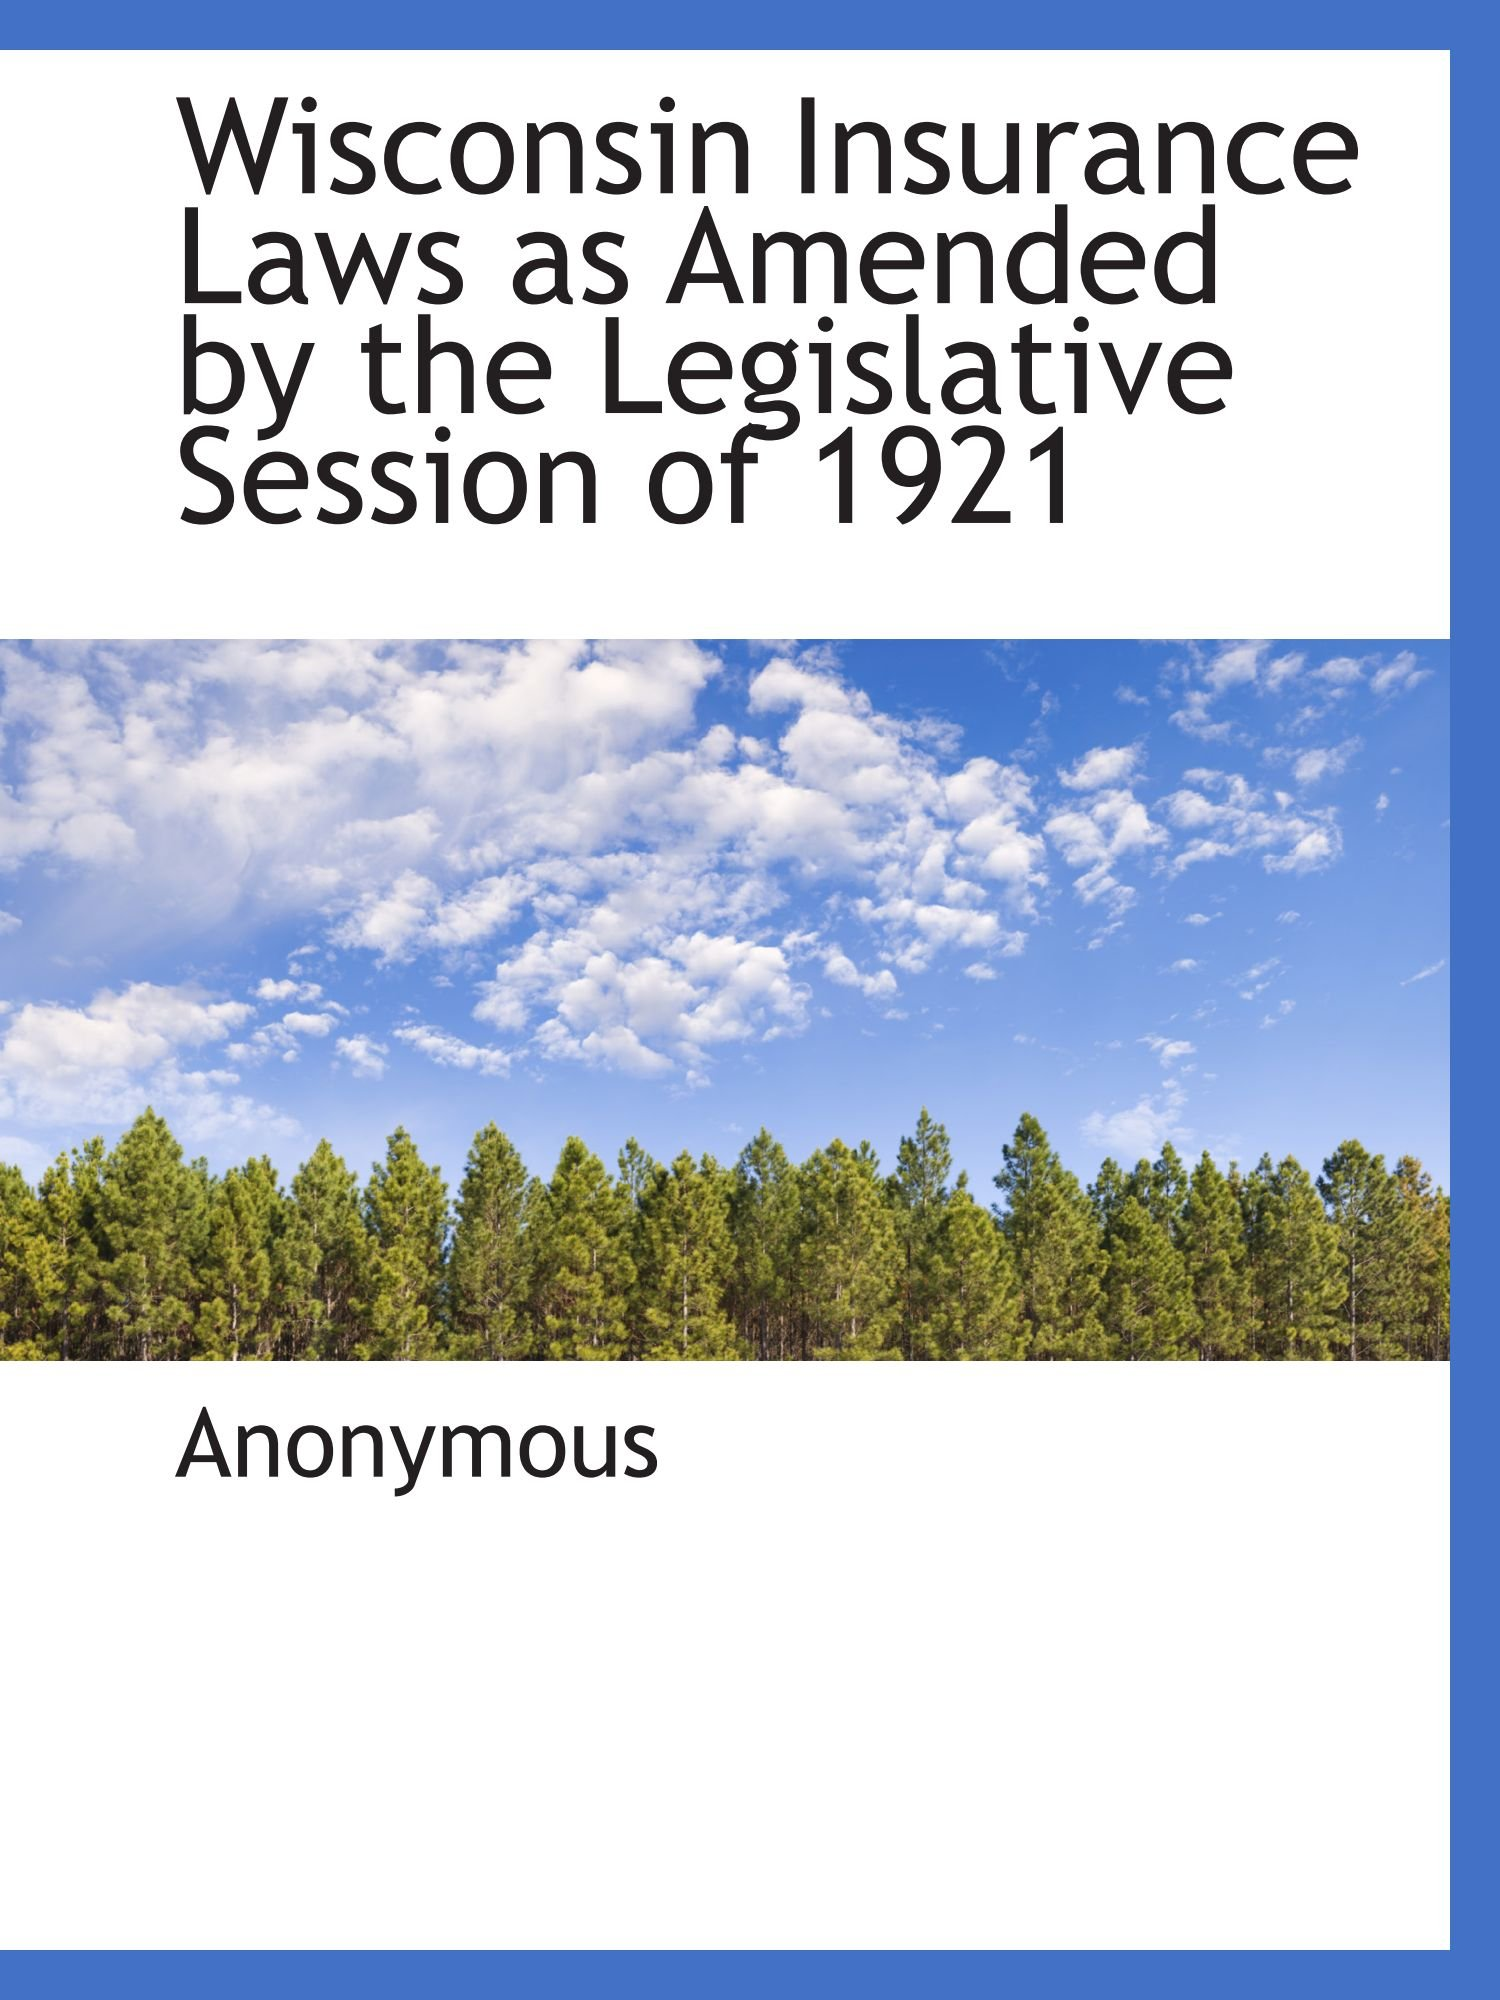 Read Online Wisconsin Insurance Laws as Amended by the Legislative Session of 1921 PDF